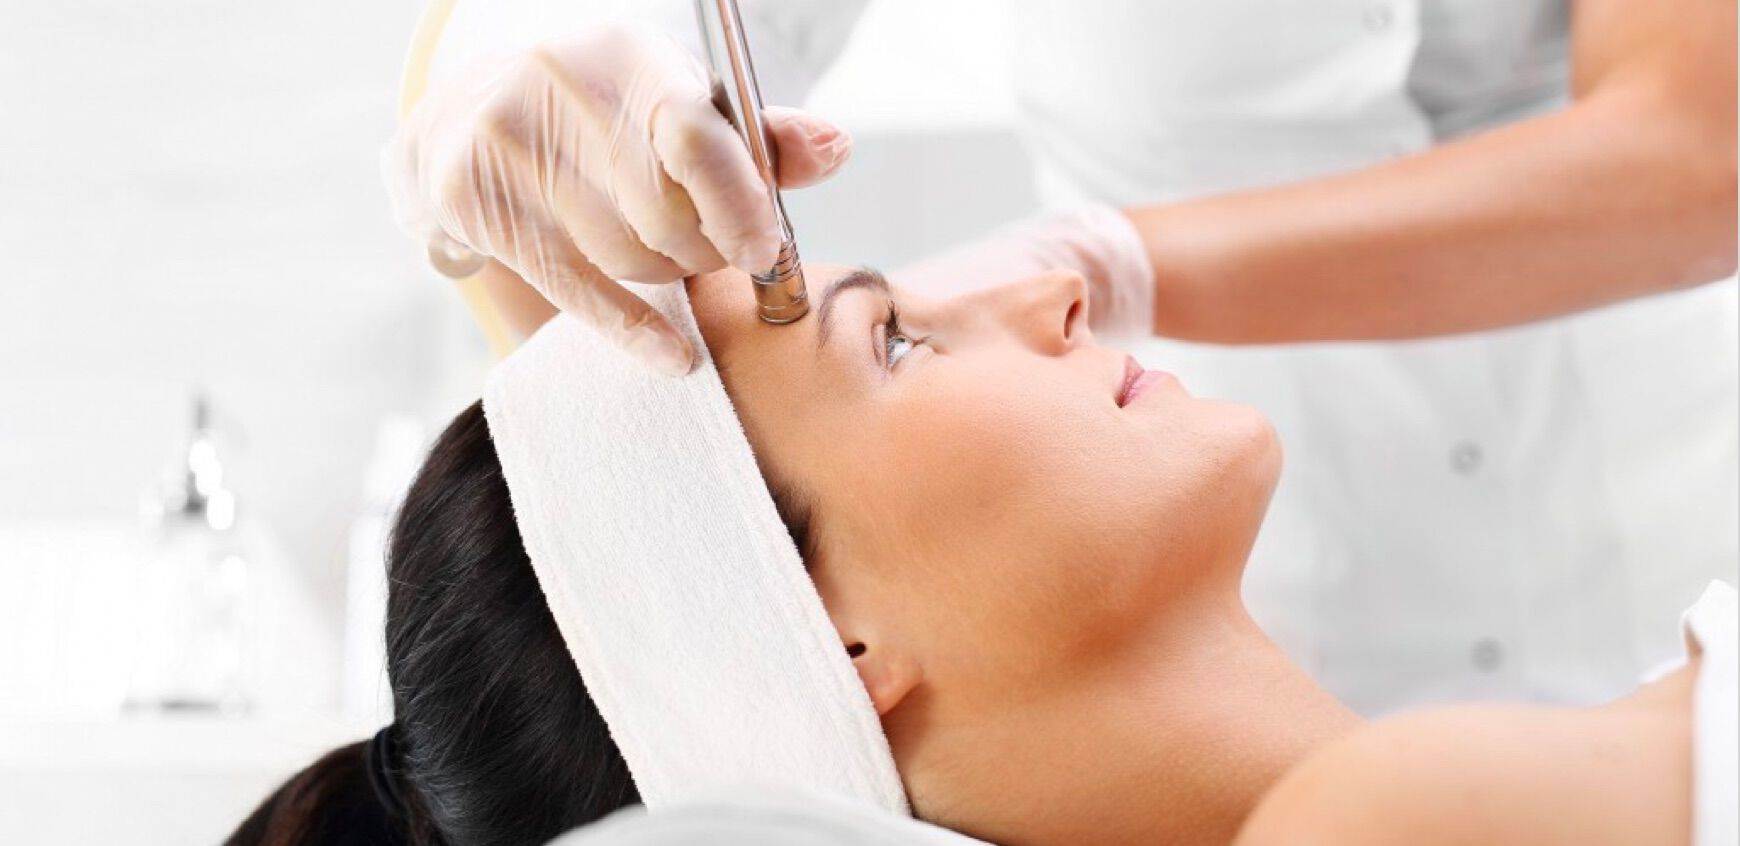 Microdermabrasion SkinCeuticals